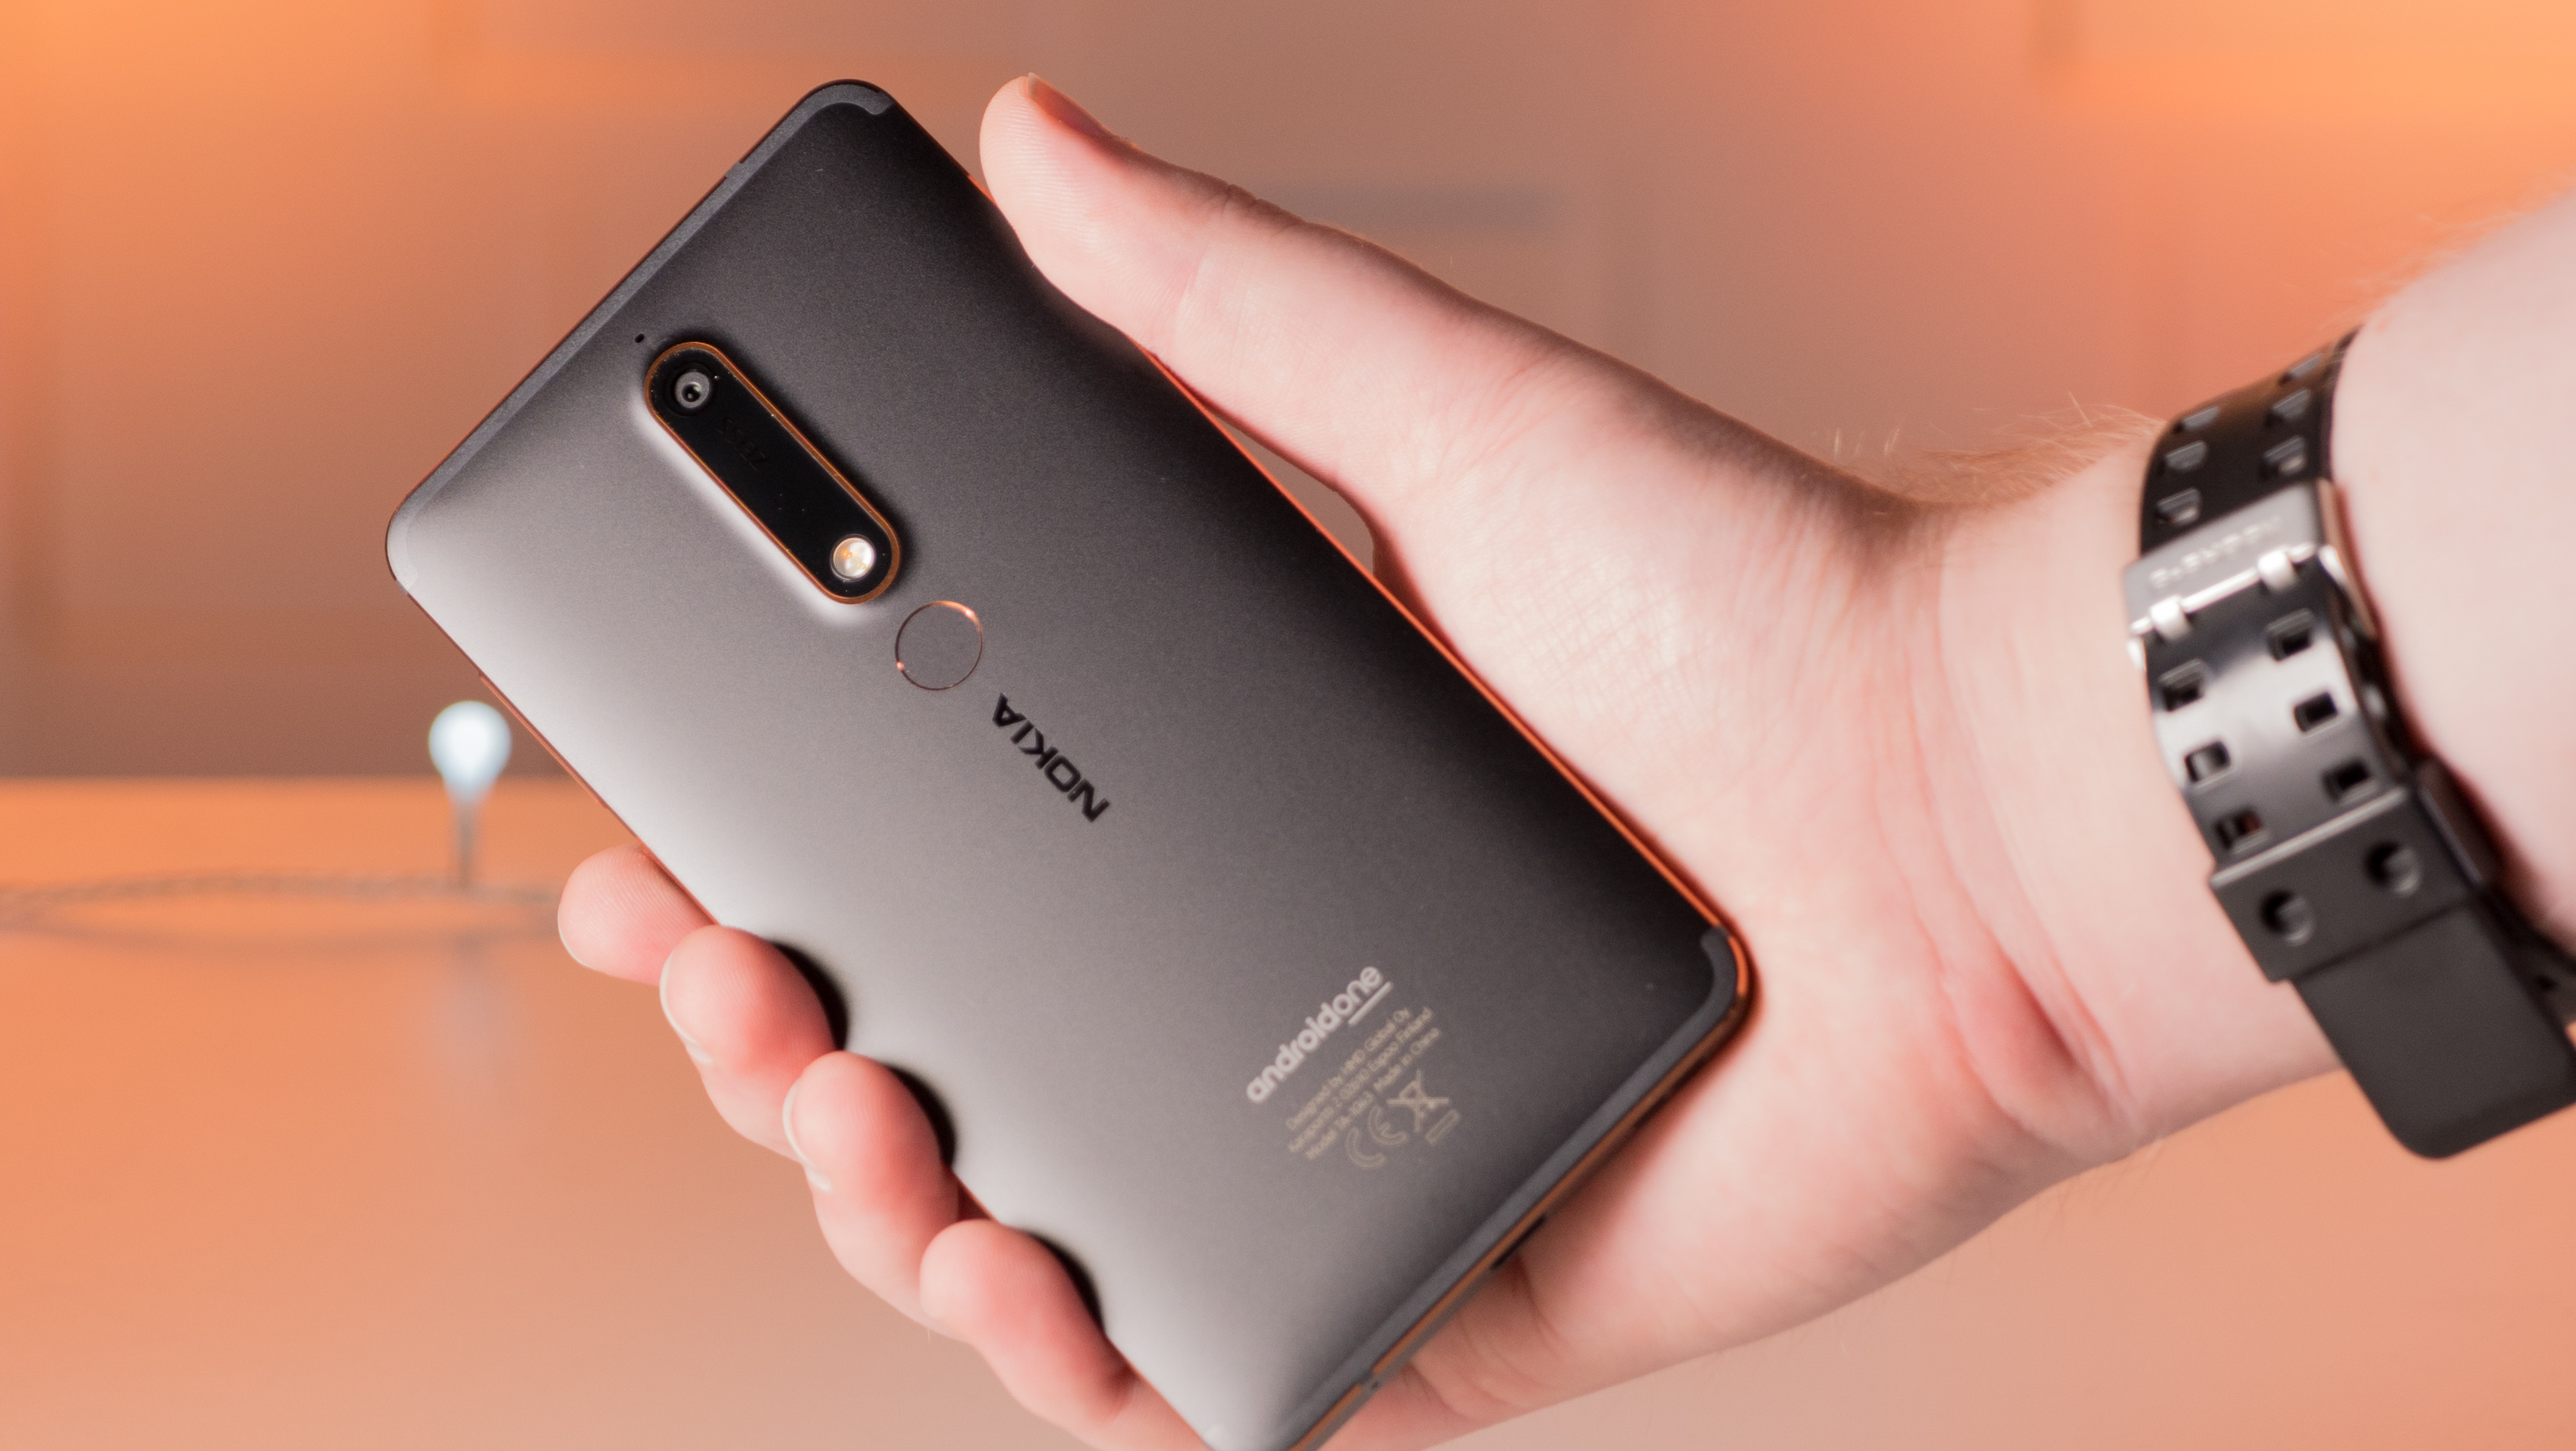 Permalink to Nokia 5 Review